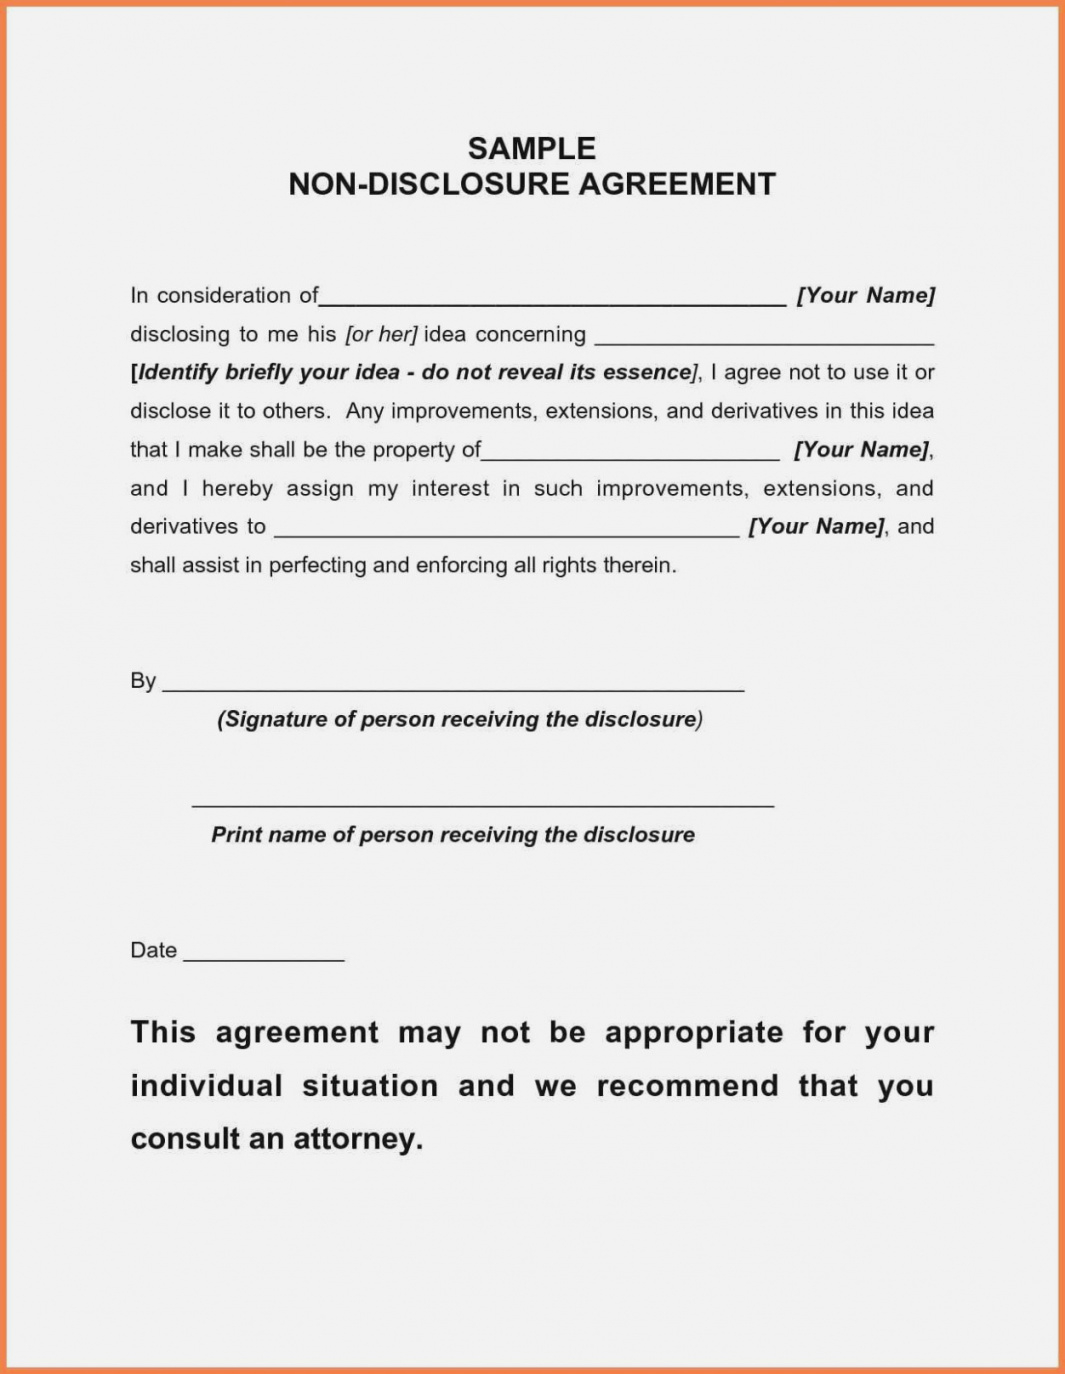 printable short form non disclosure agreement lovely 14 inspirational blank short non disclosure agreement template